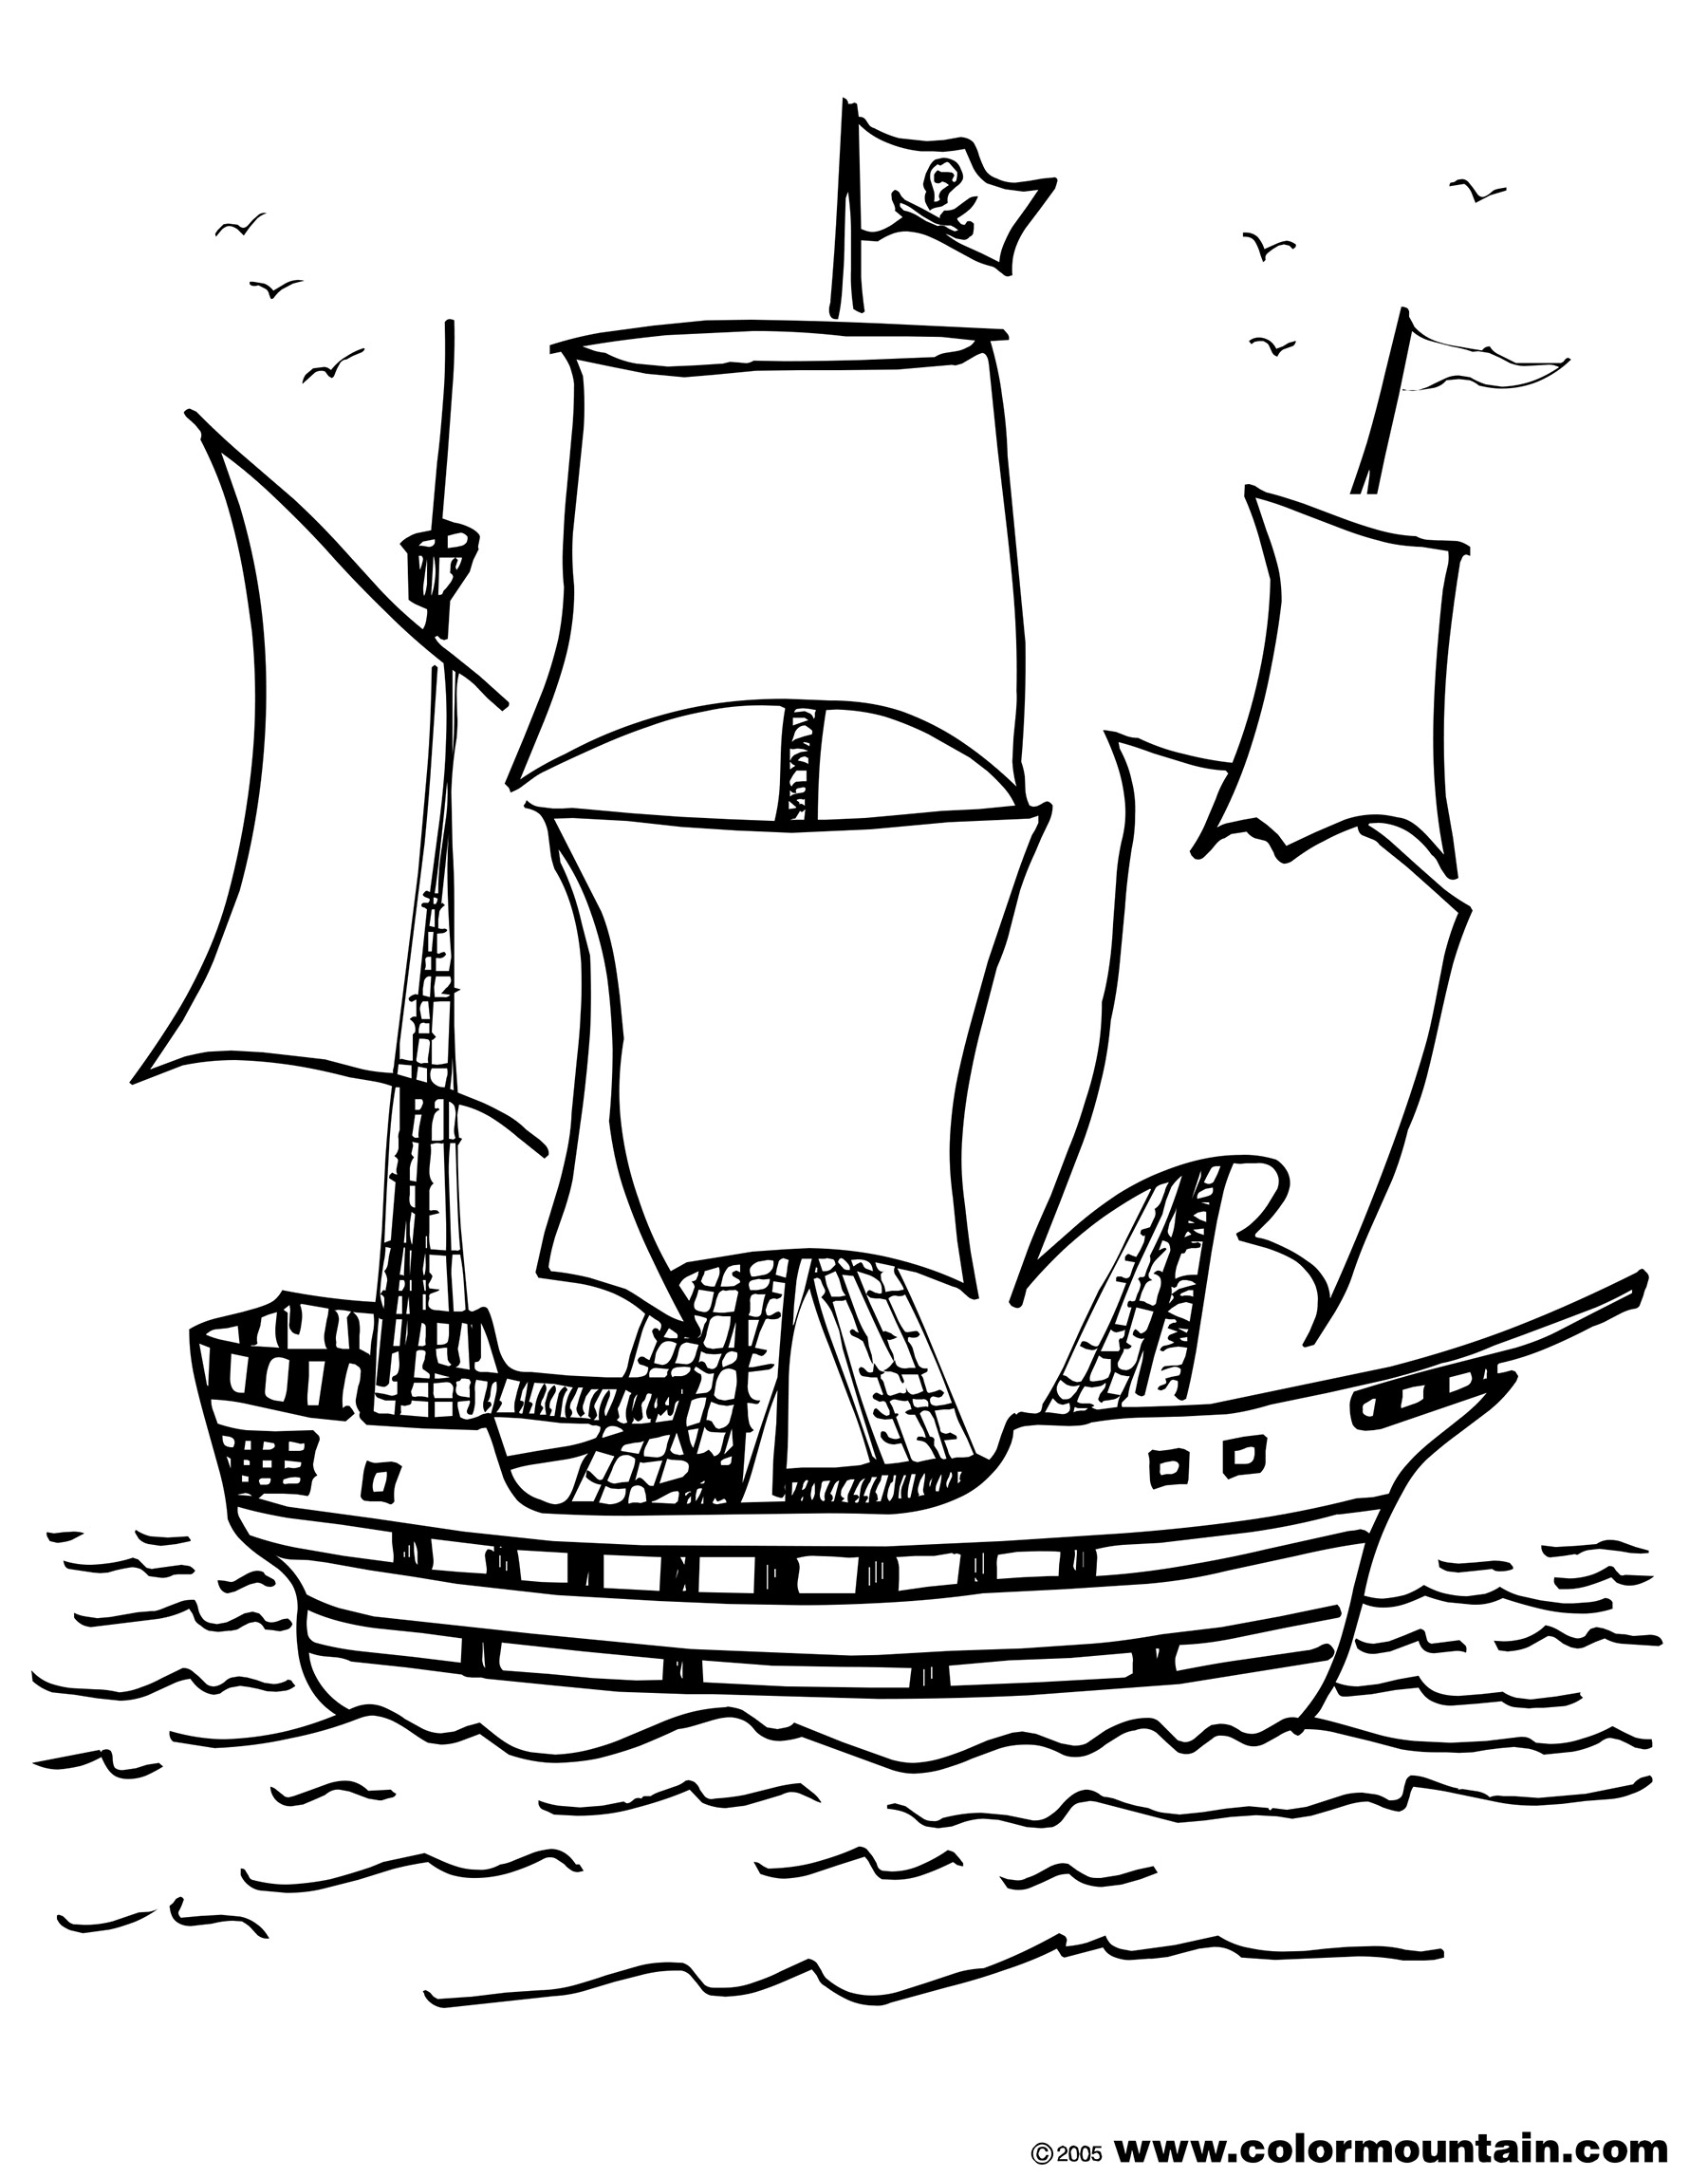 2011 05 01 archive also Ships Chasing Clip Art 108302 together with Captain Jack Sparrow Quotes The Problem Is Not The Problem as well Pirate Ship 138636133 furthermore Pirate Clip Art Free. on black pearl ship